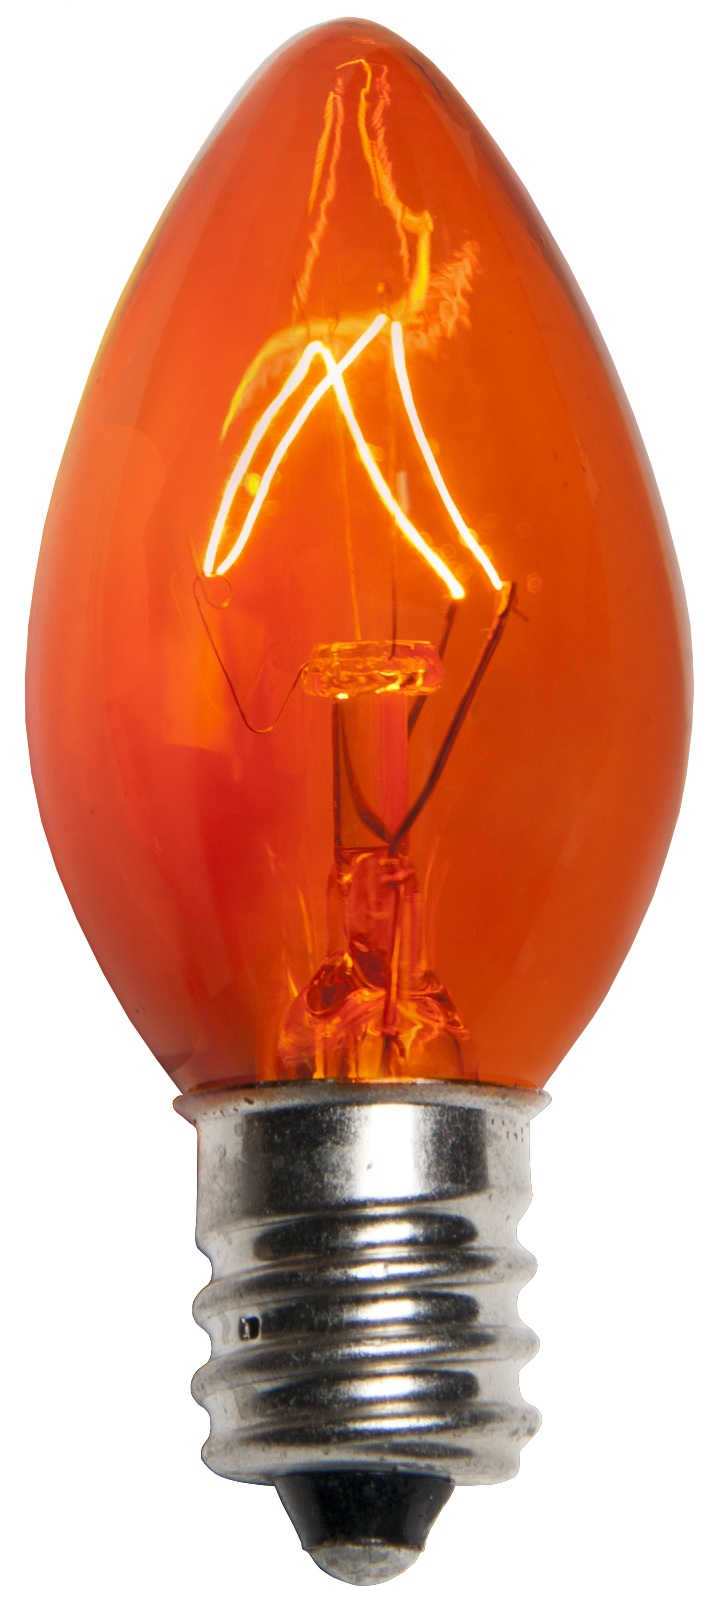 Battery Operated Light Bulb